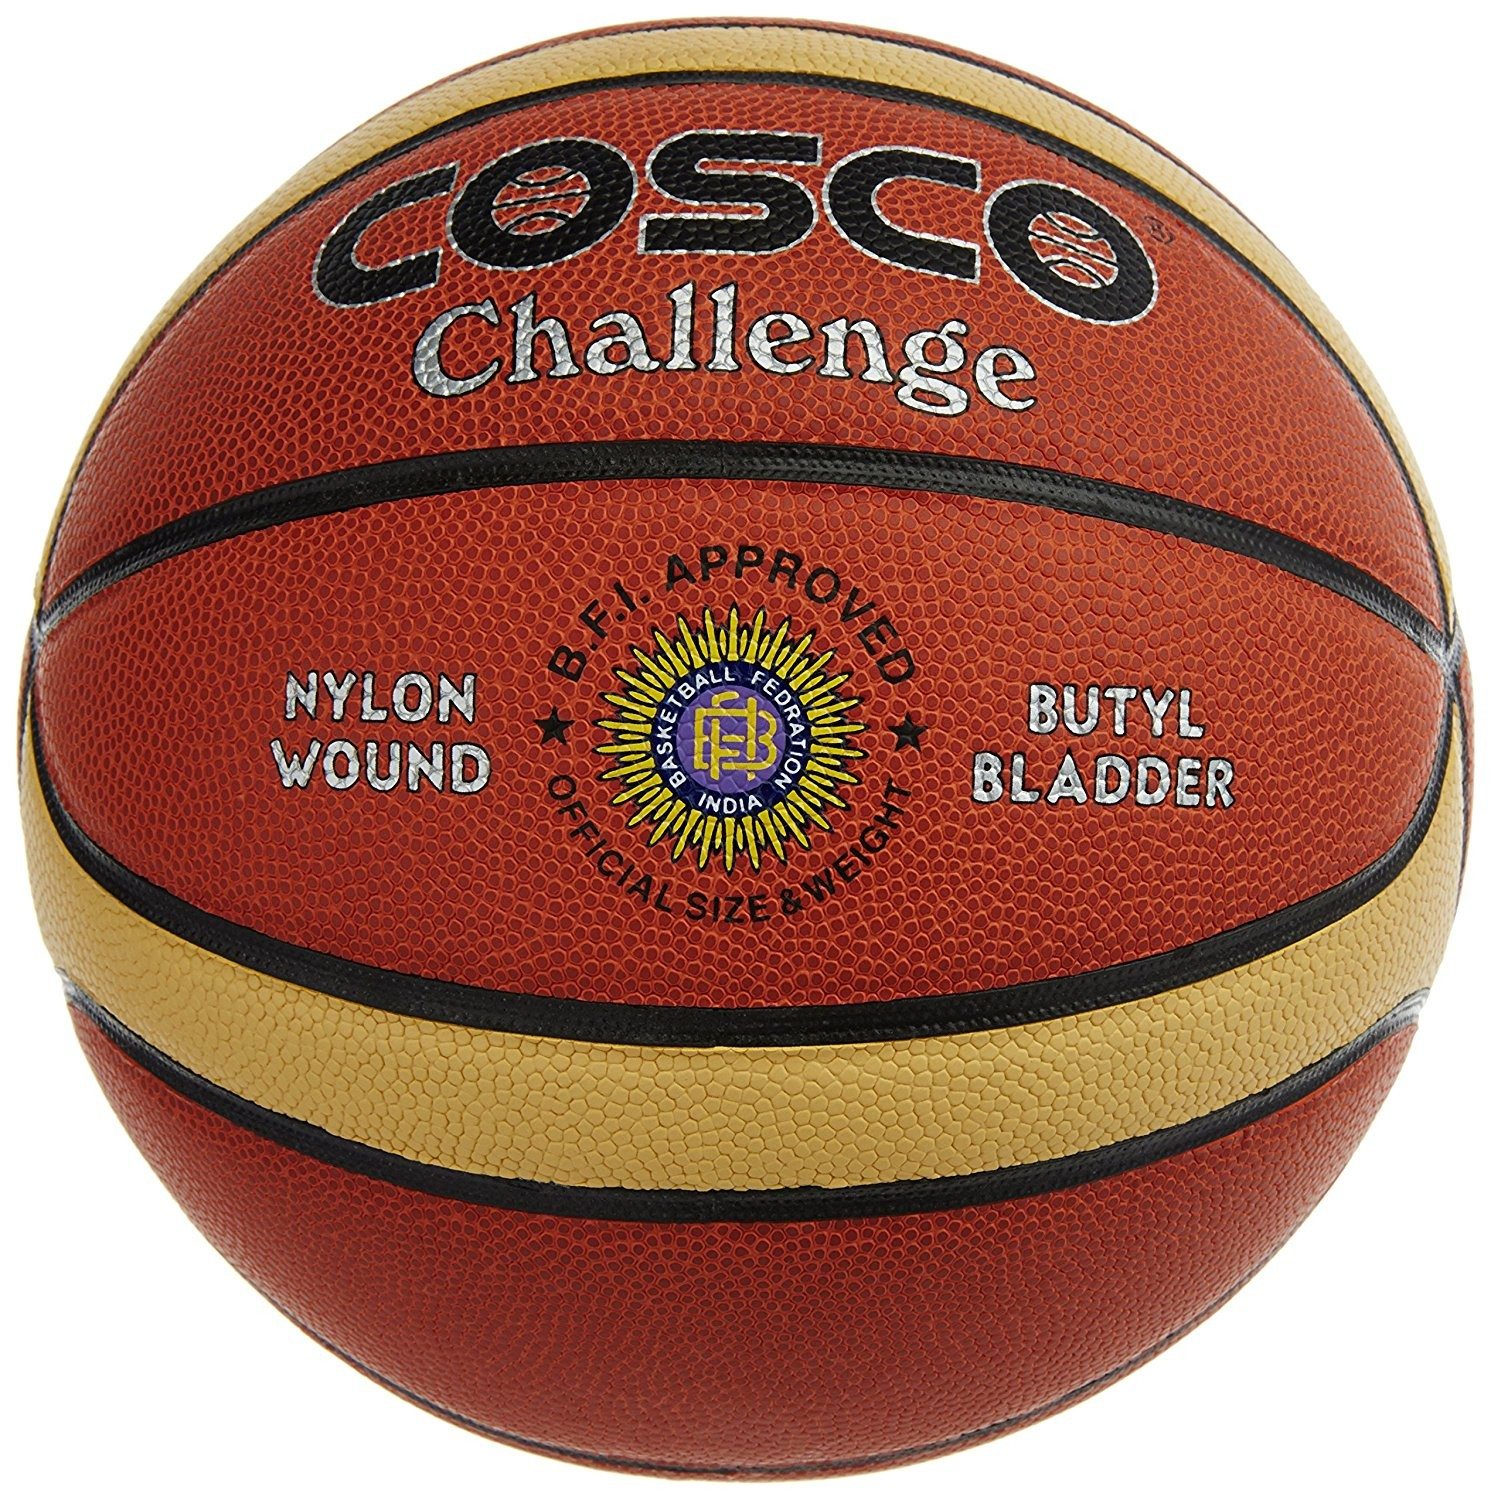 Cosco Challenge Basketball Size 6